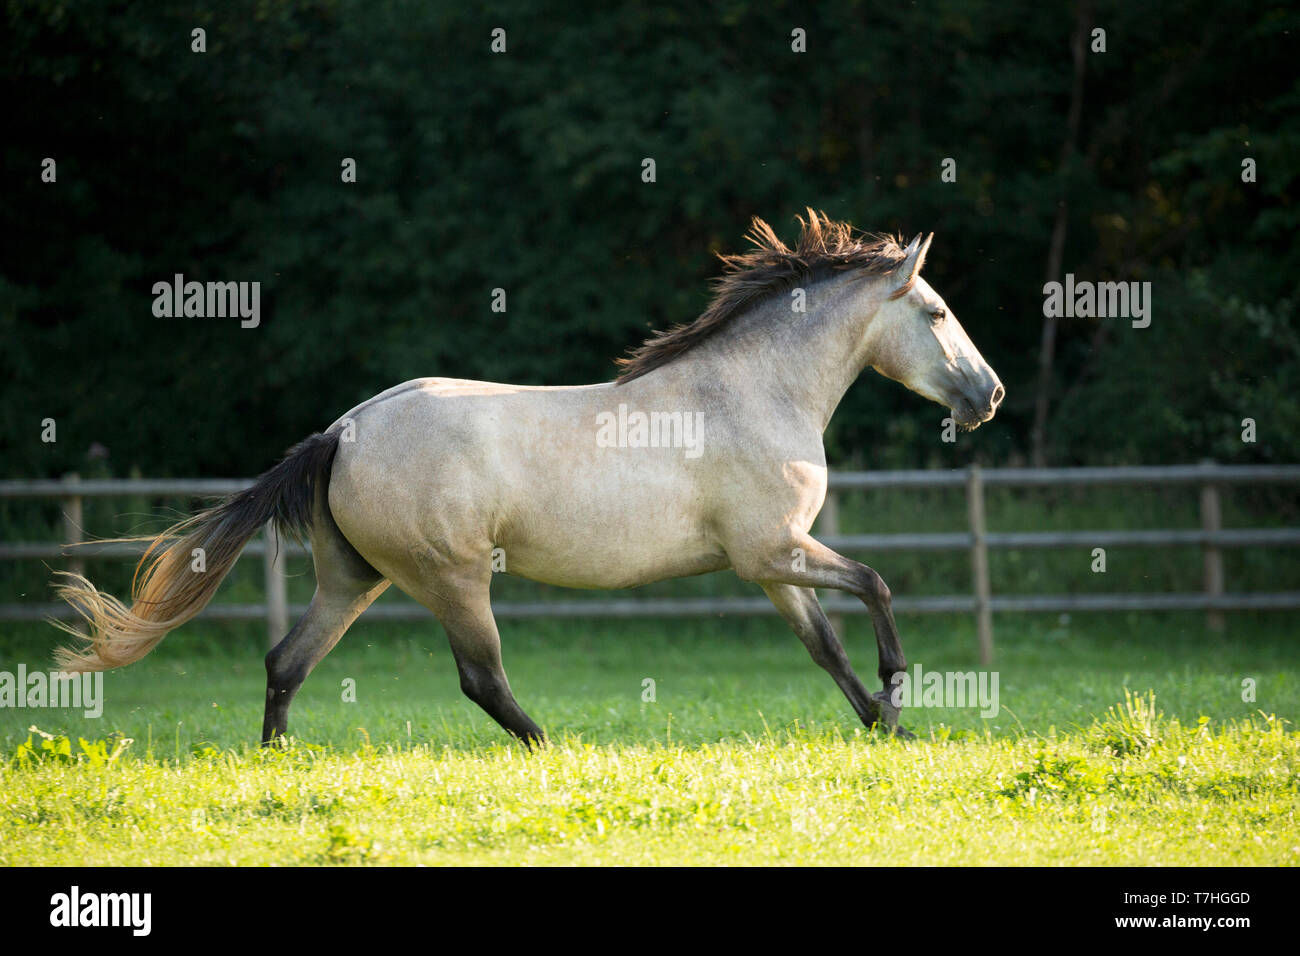 Lusitano. Juvenile grey mare galloping on a pasture. Germany - Stock Image